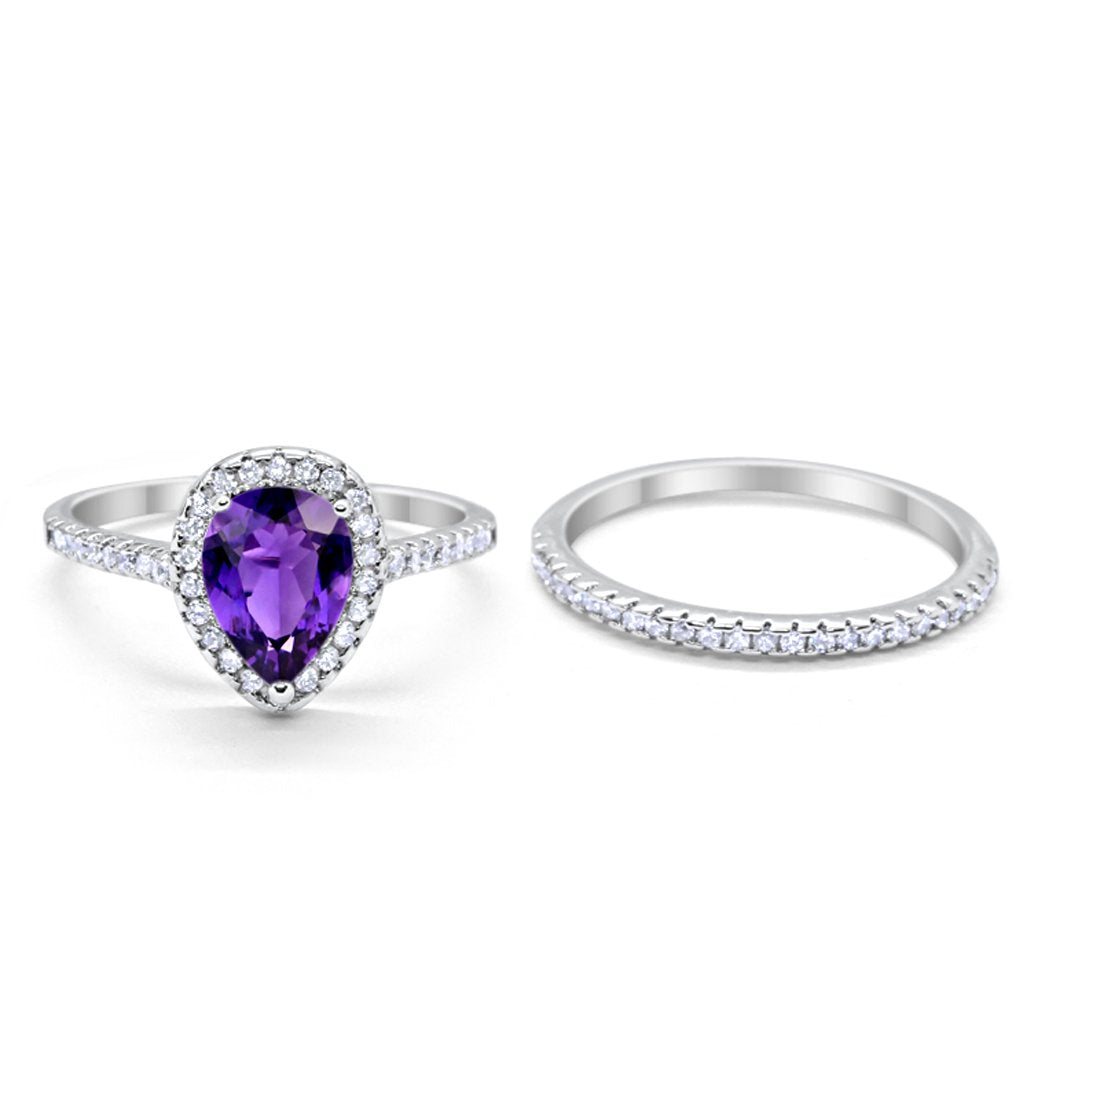 Teardrop Pear Bridal Set Engagement Ring Simulated Amethyst CZ 925 Sterling Silver